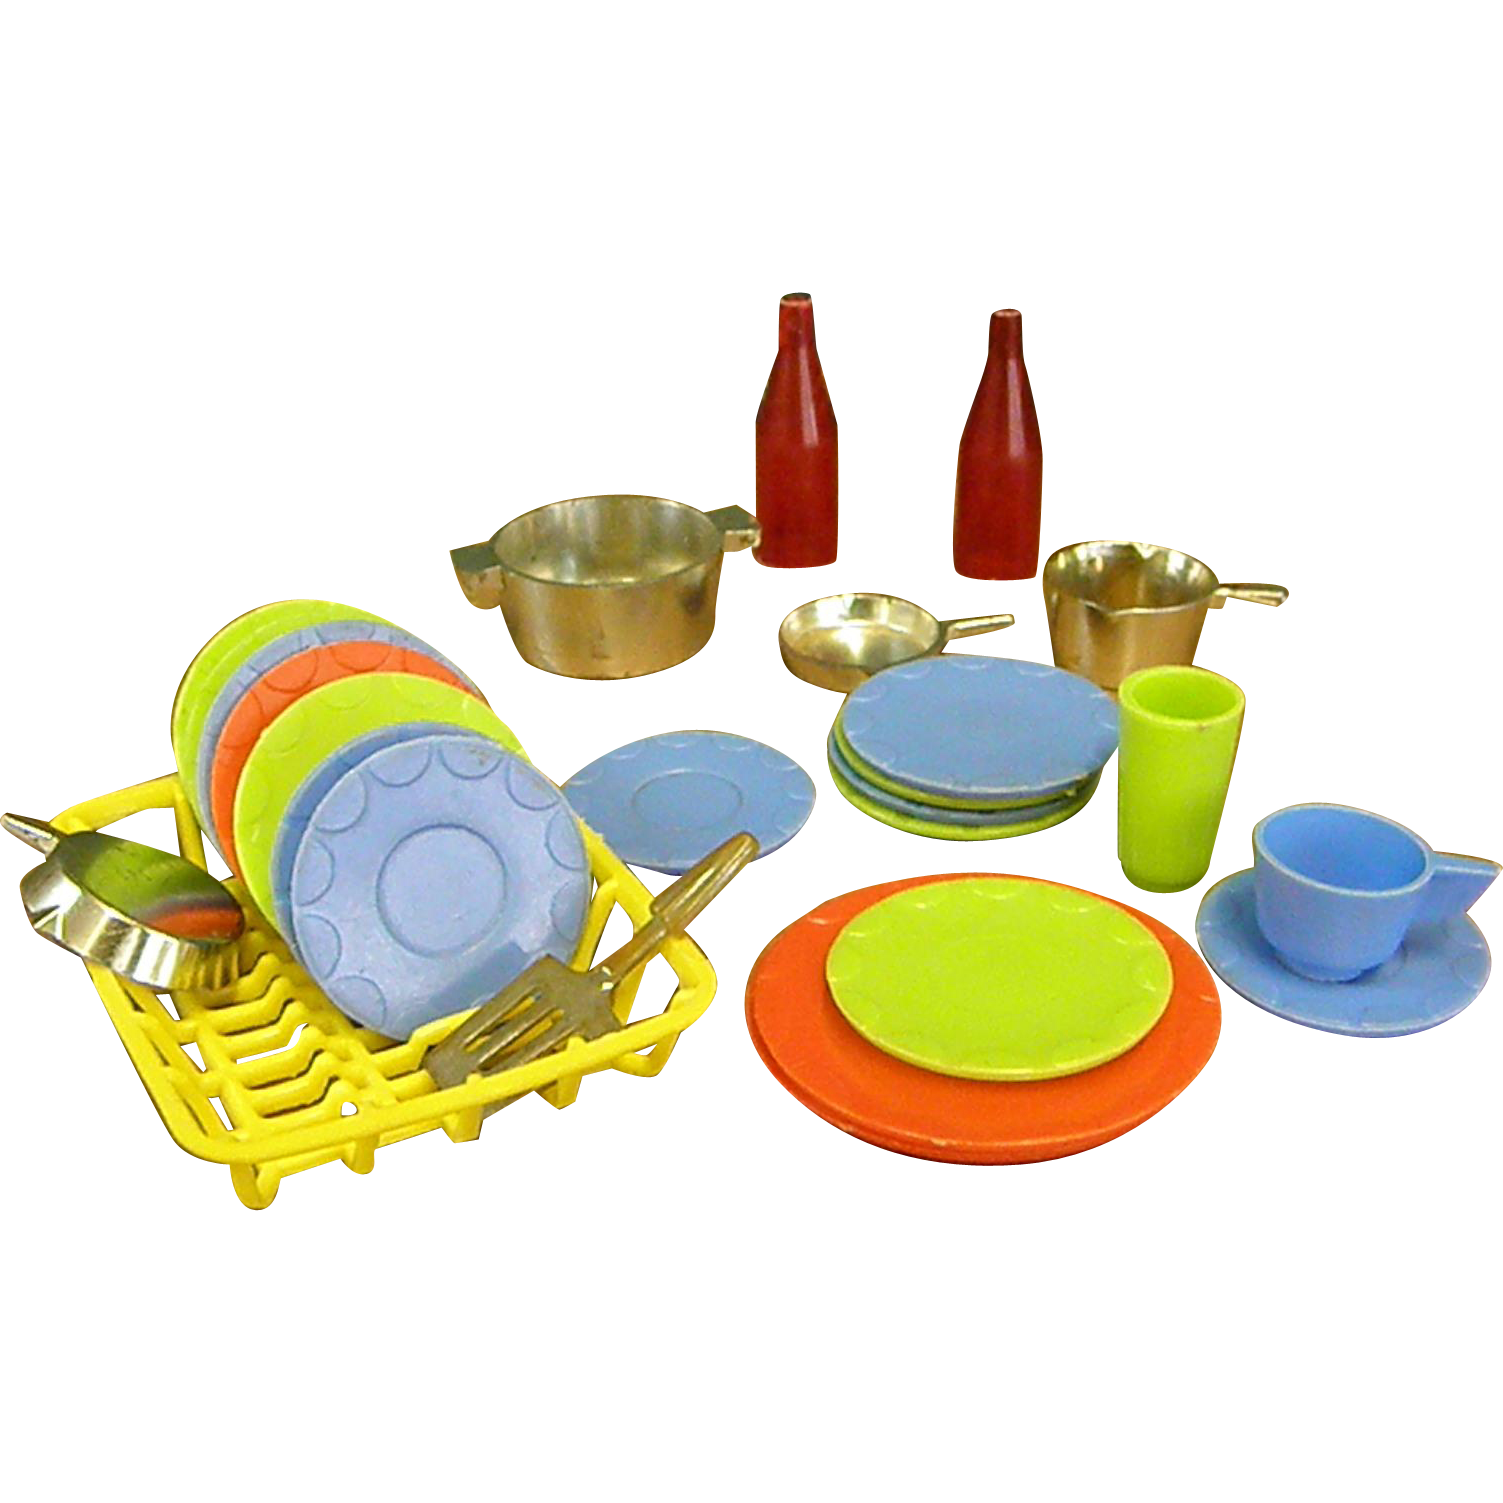 Cute miniature plastic and. Dishes clipart dish rack